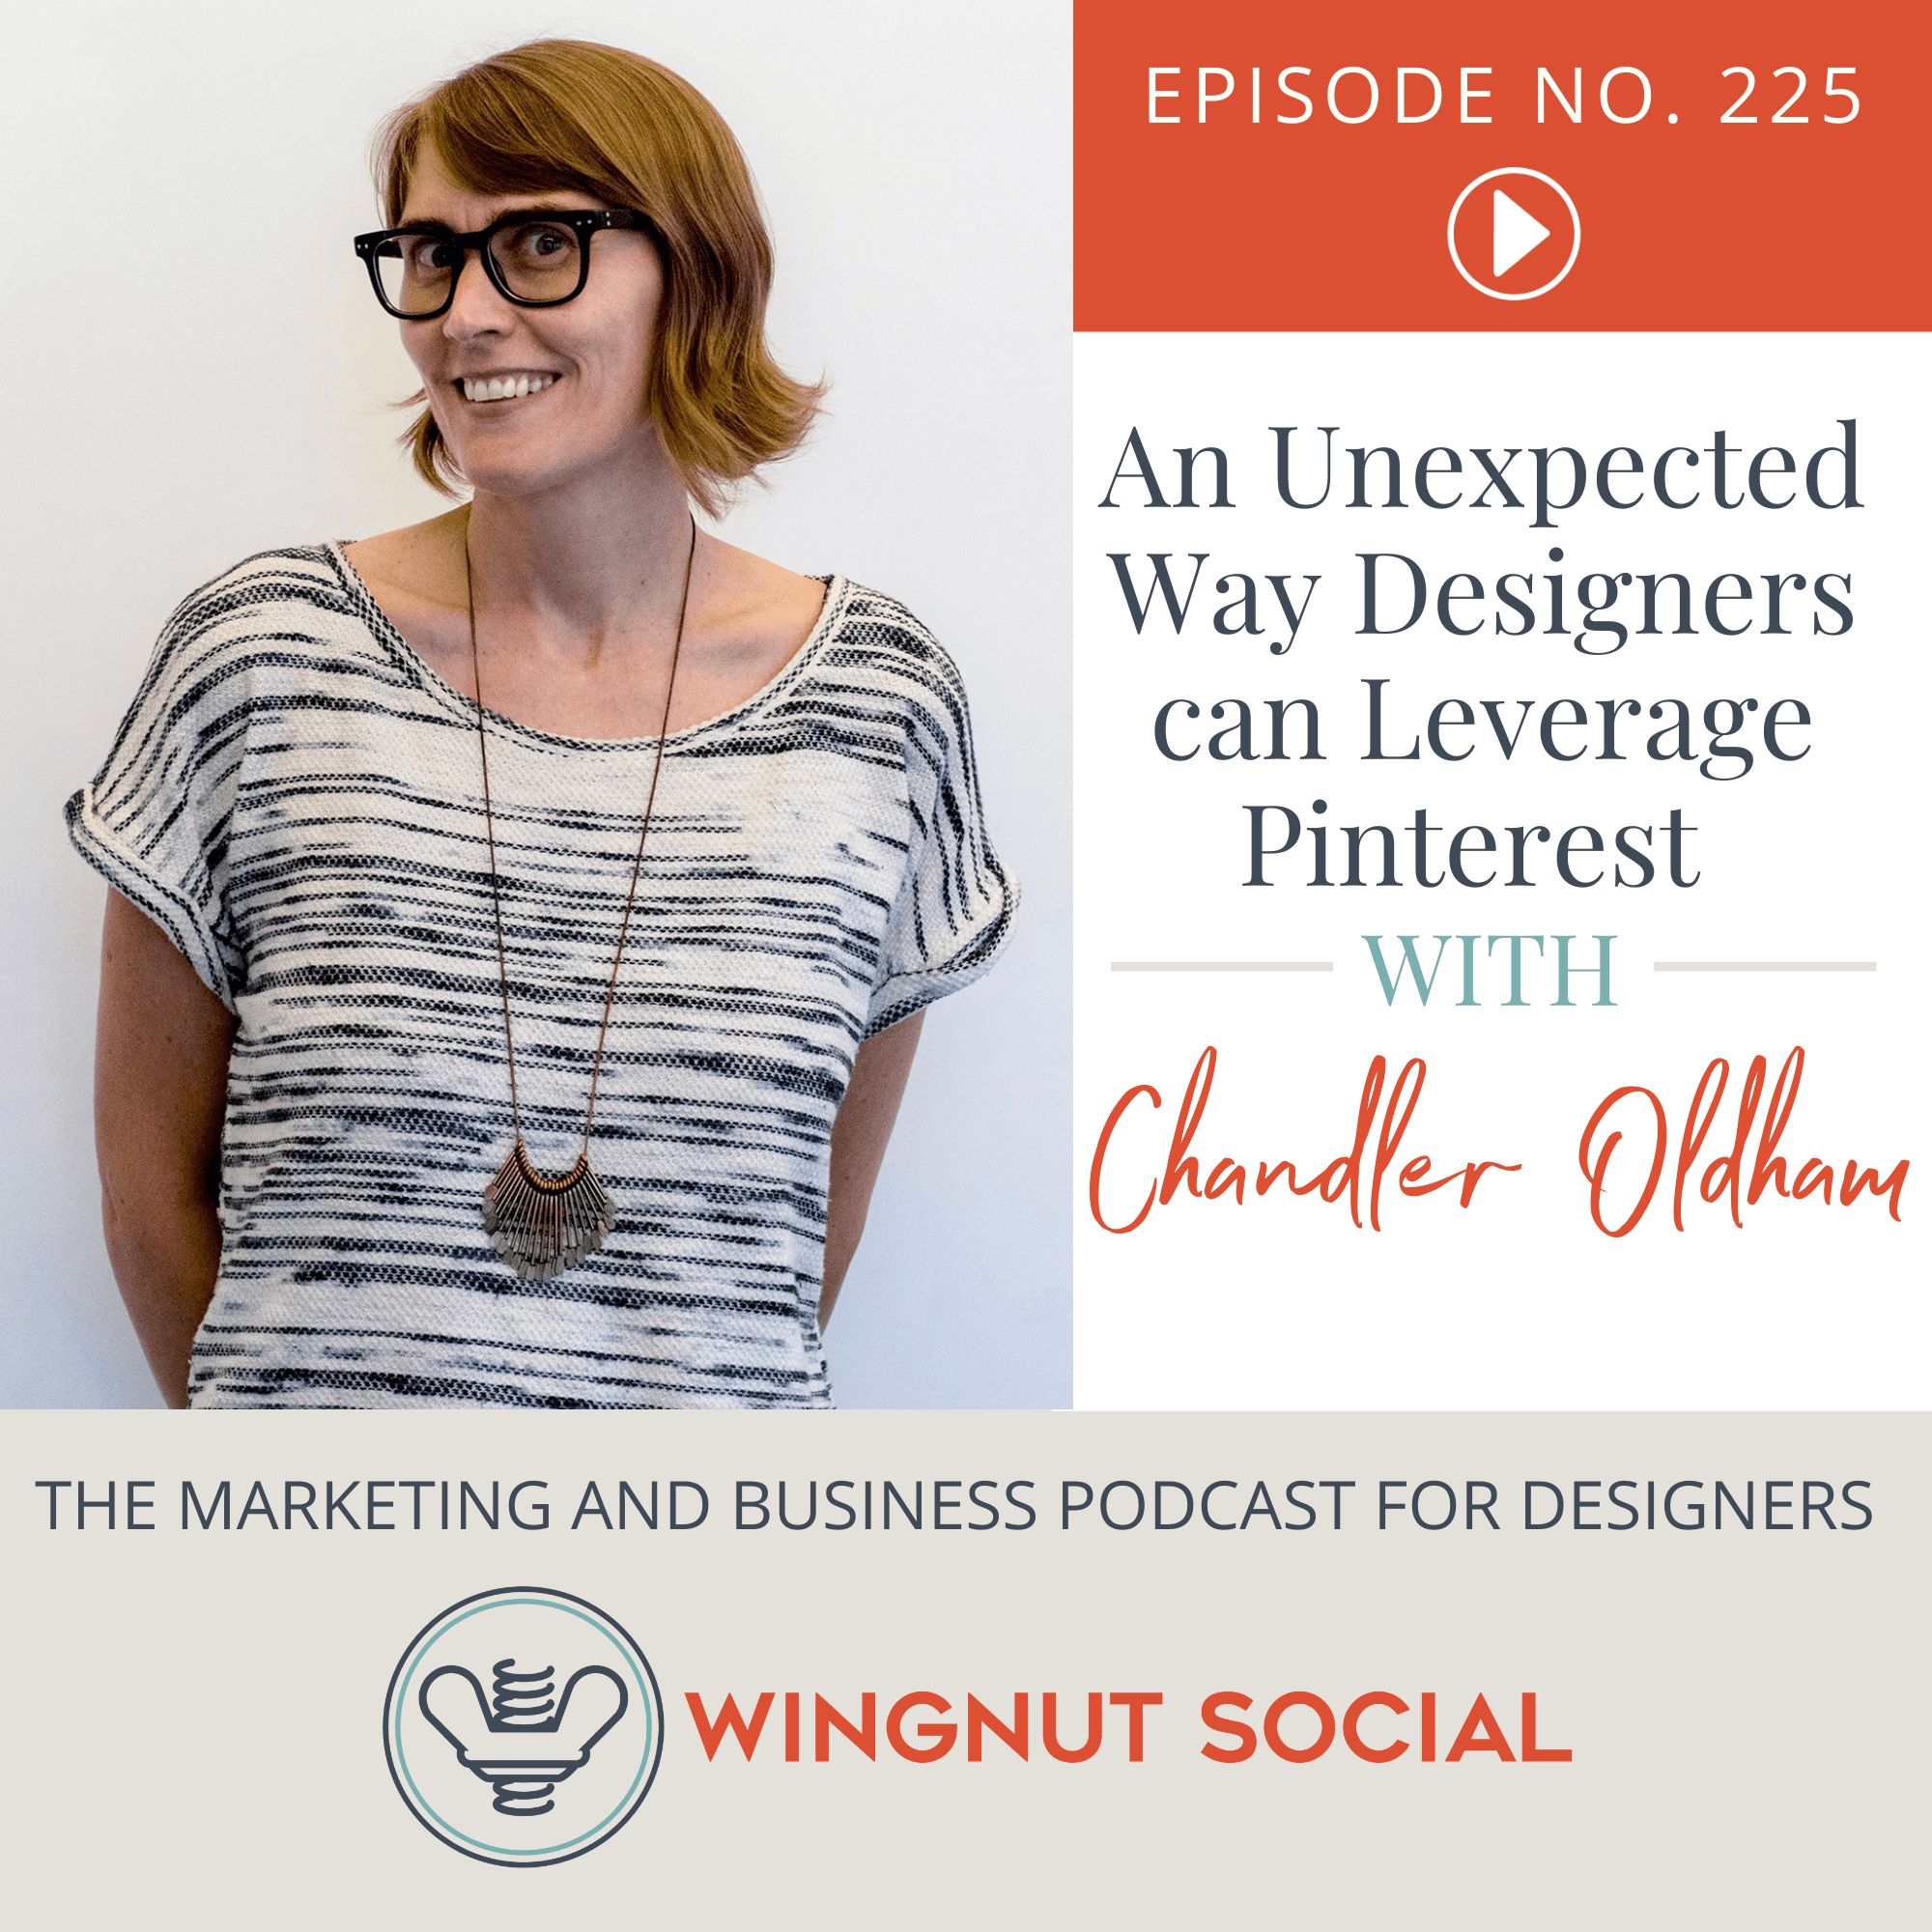 An Unexpected Way Designers can Leverage Pinterest per Chandler Oldham - Episode 225